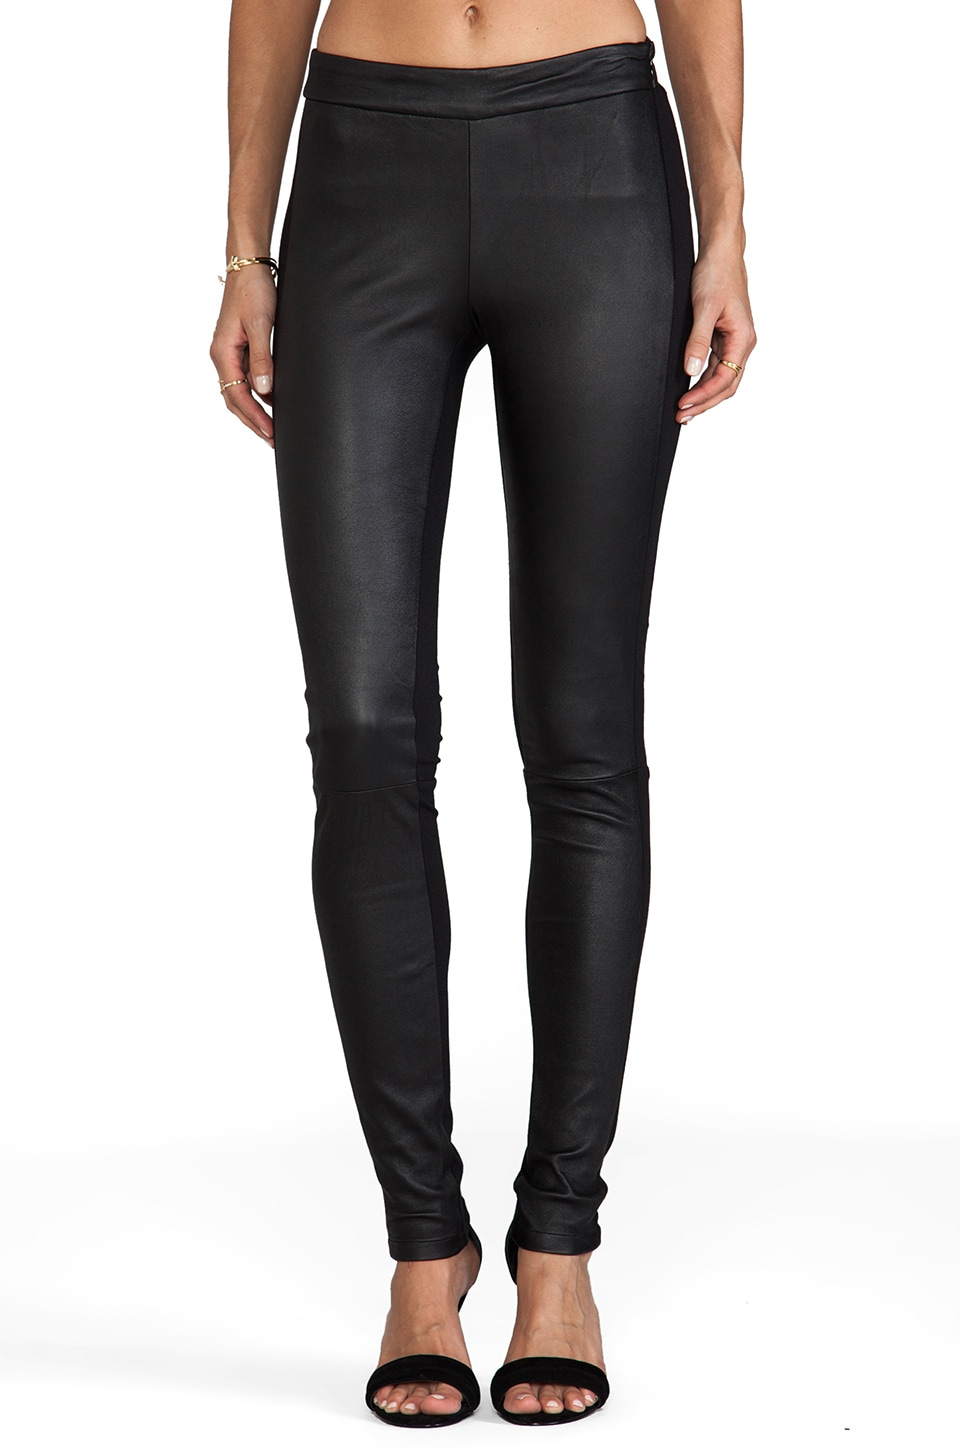 DEREK LAM 10 CROSBY Front Leather Panel Legging in Black